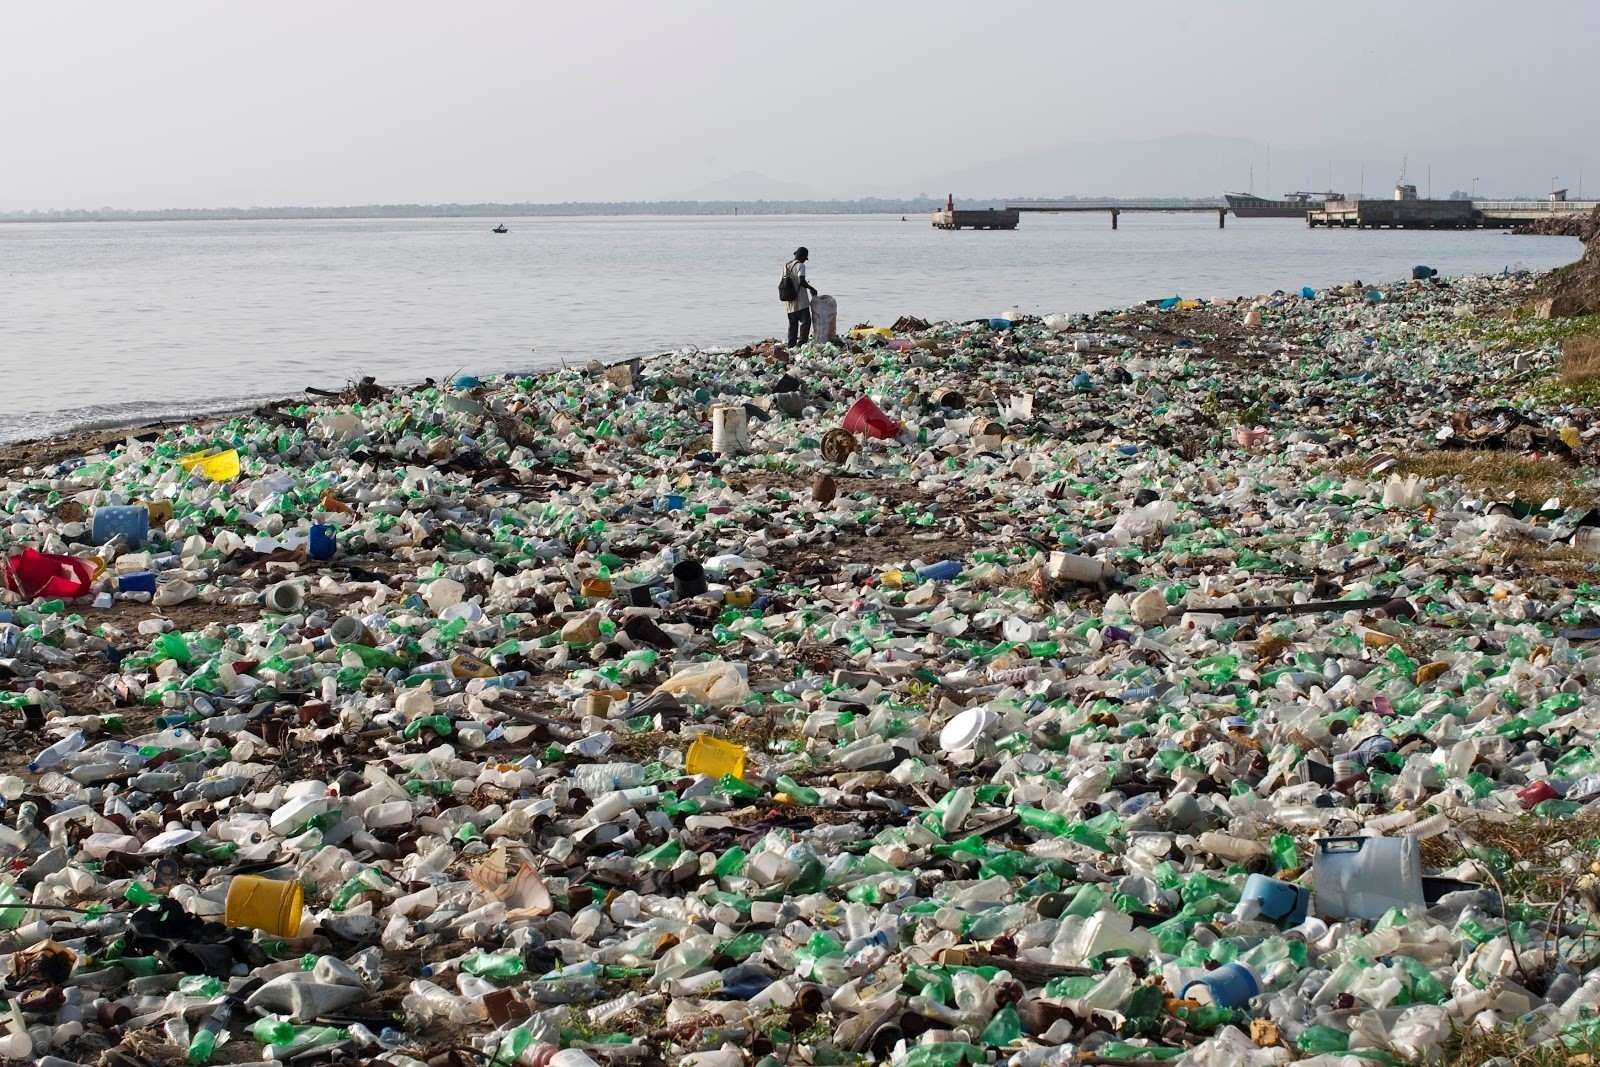 A beach covered in plastic waste.